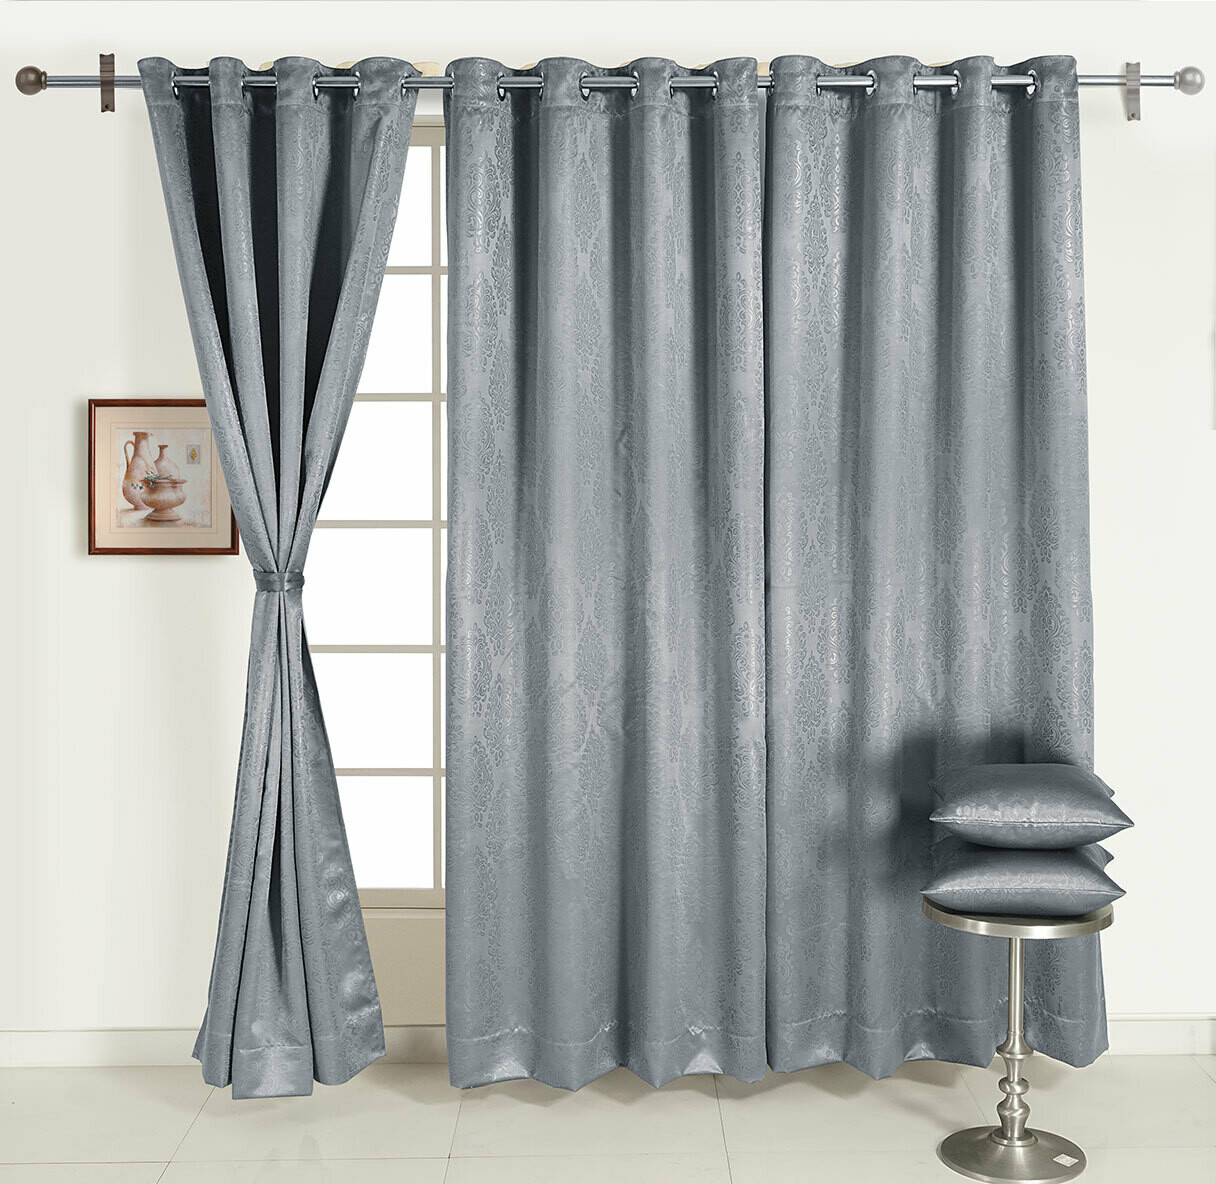 Swayam Grey Colour Motif J&B Blackout Eyelet Curtain for Window